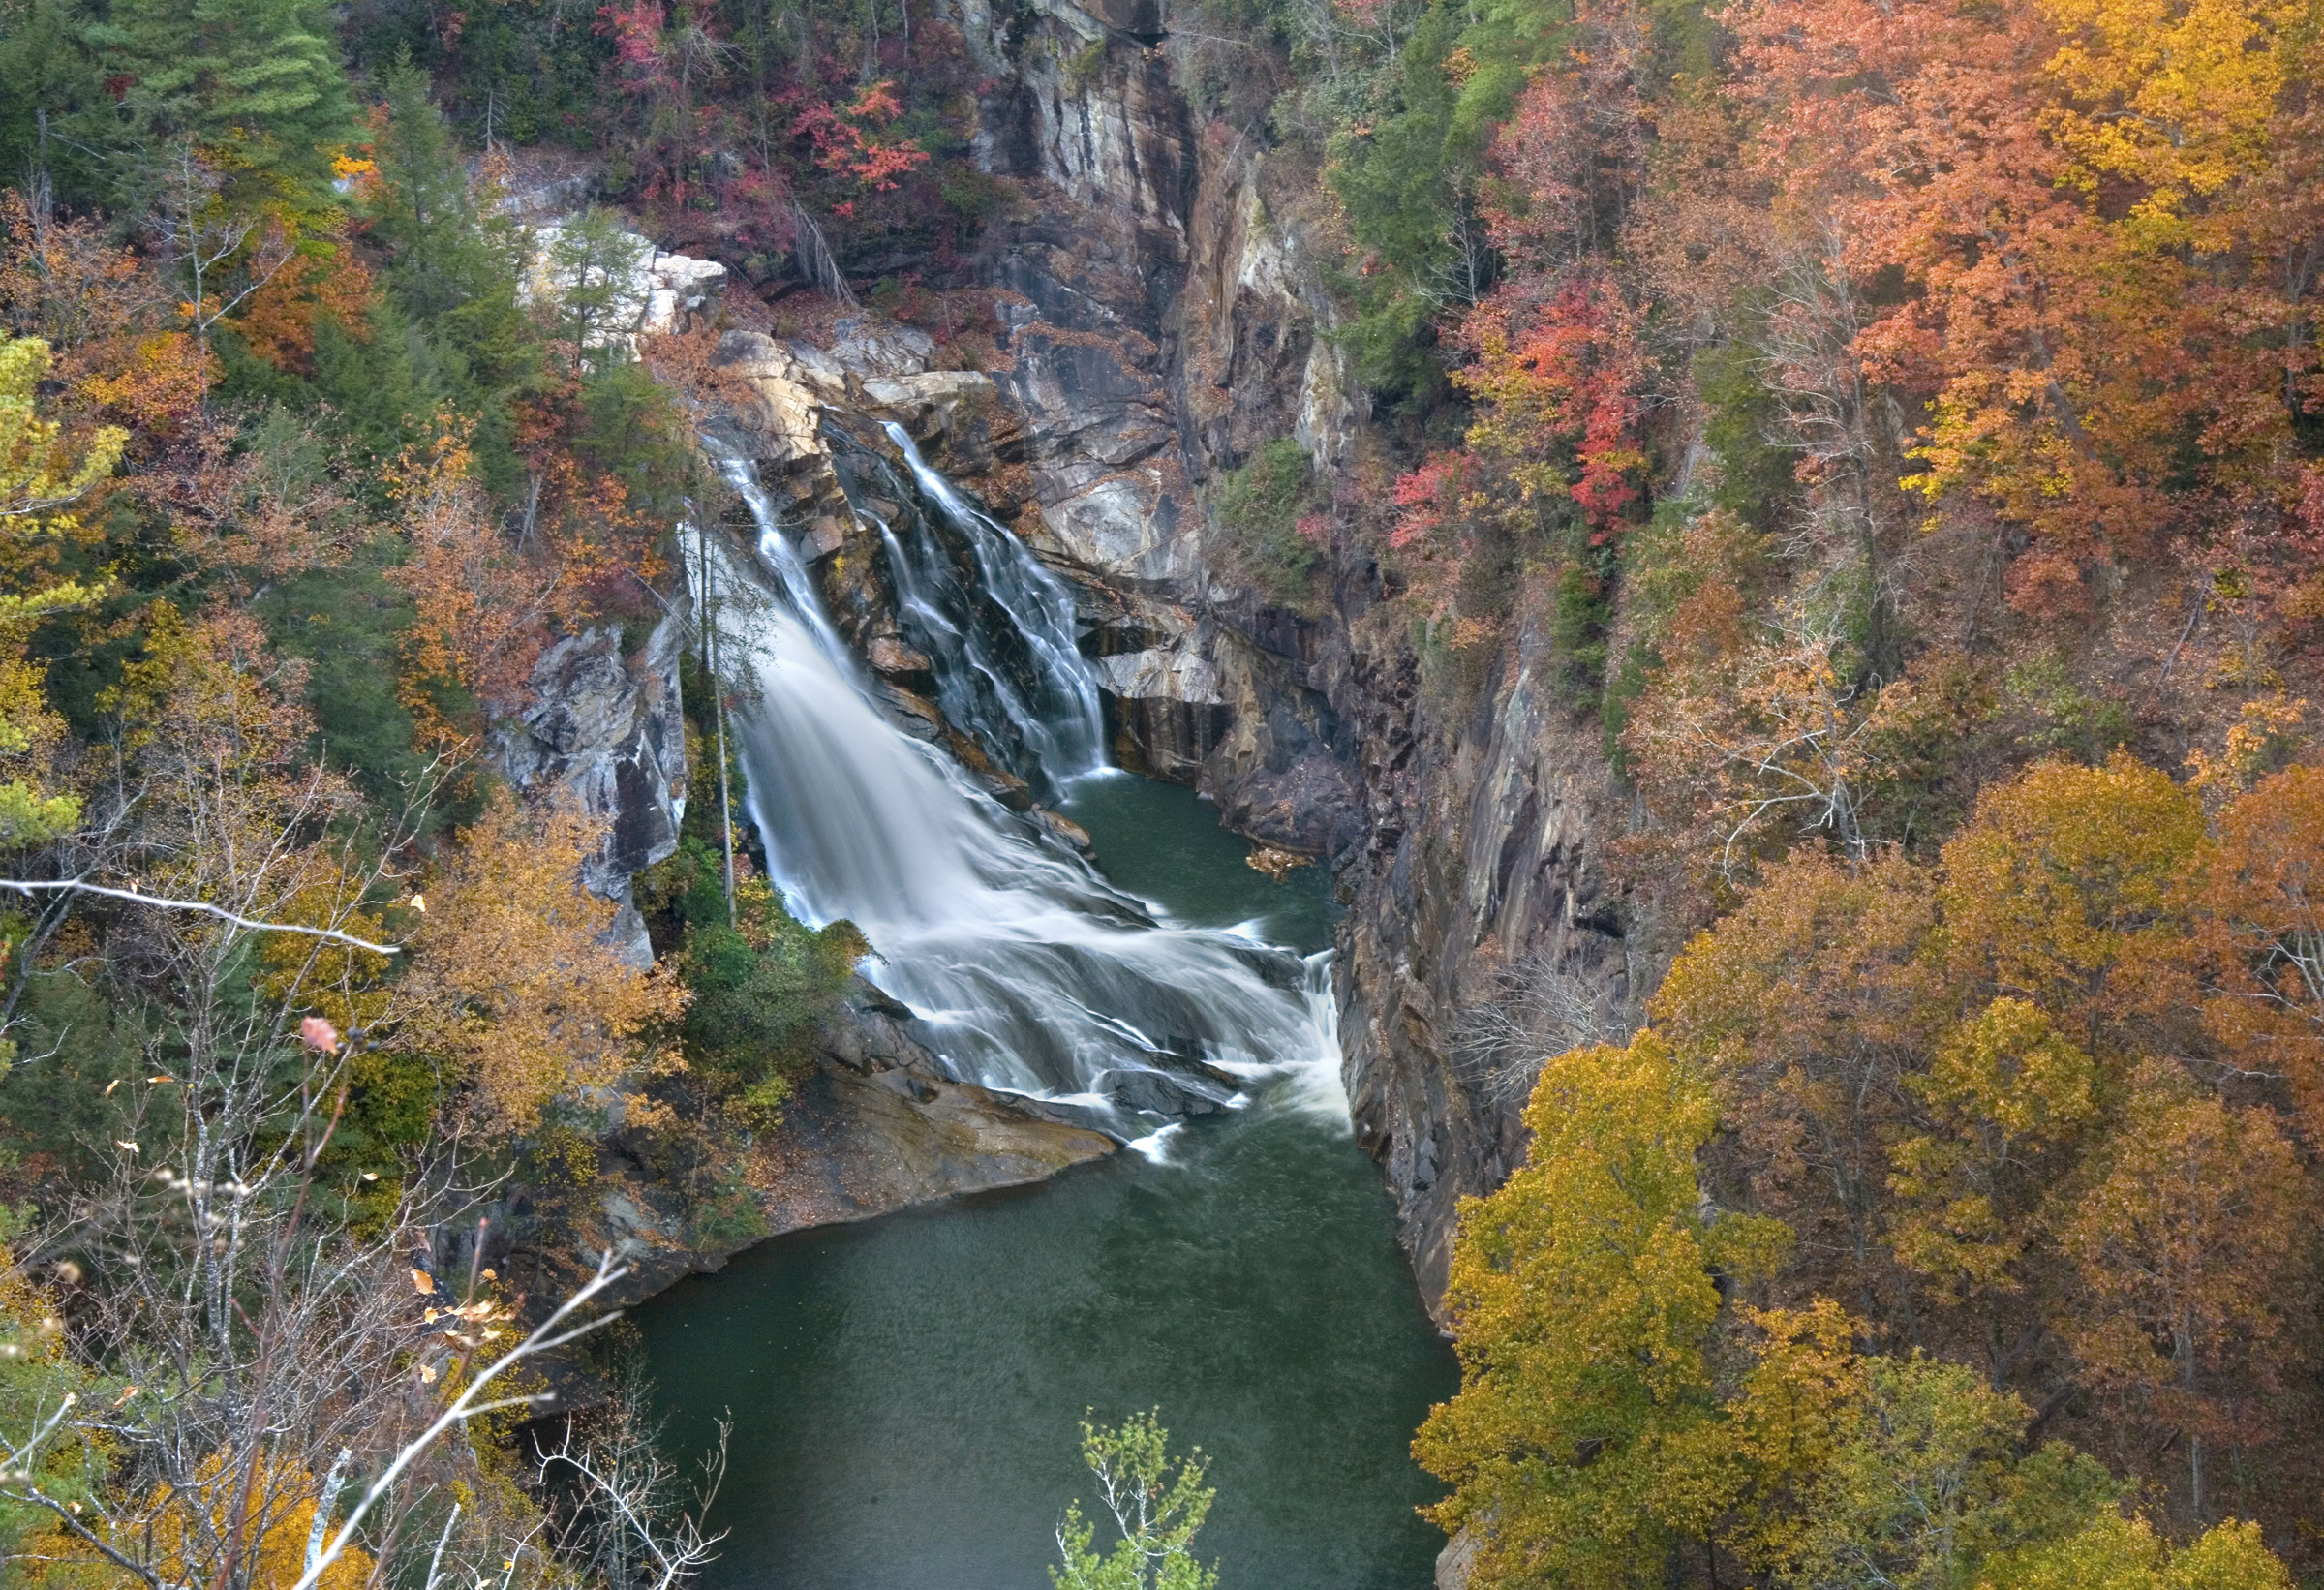 The Tallulah Gorge Chattooga Conservancy